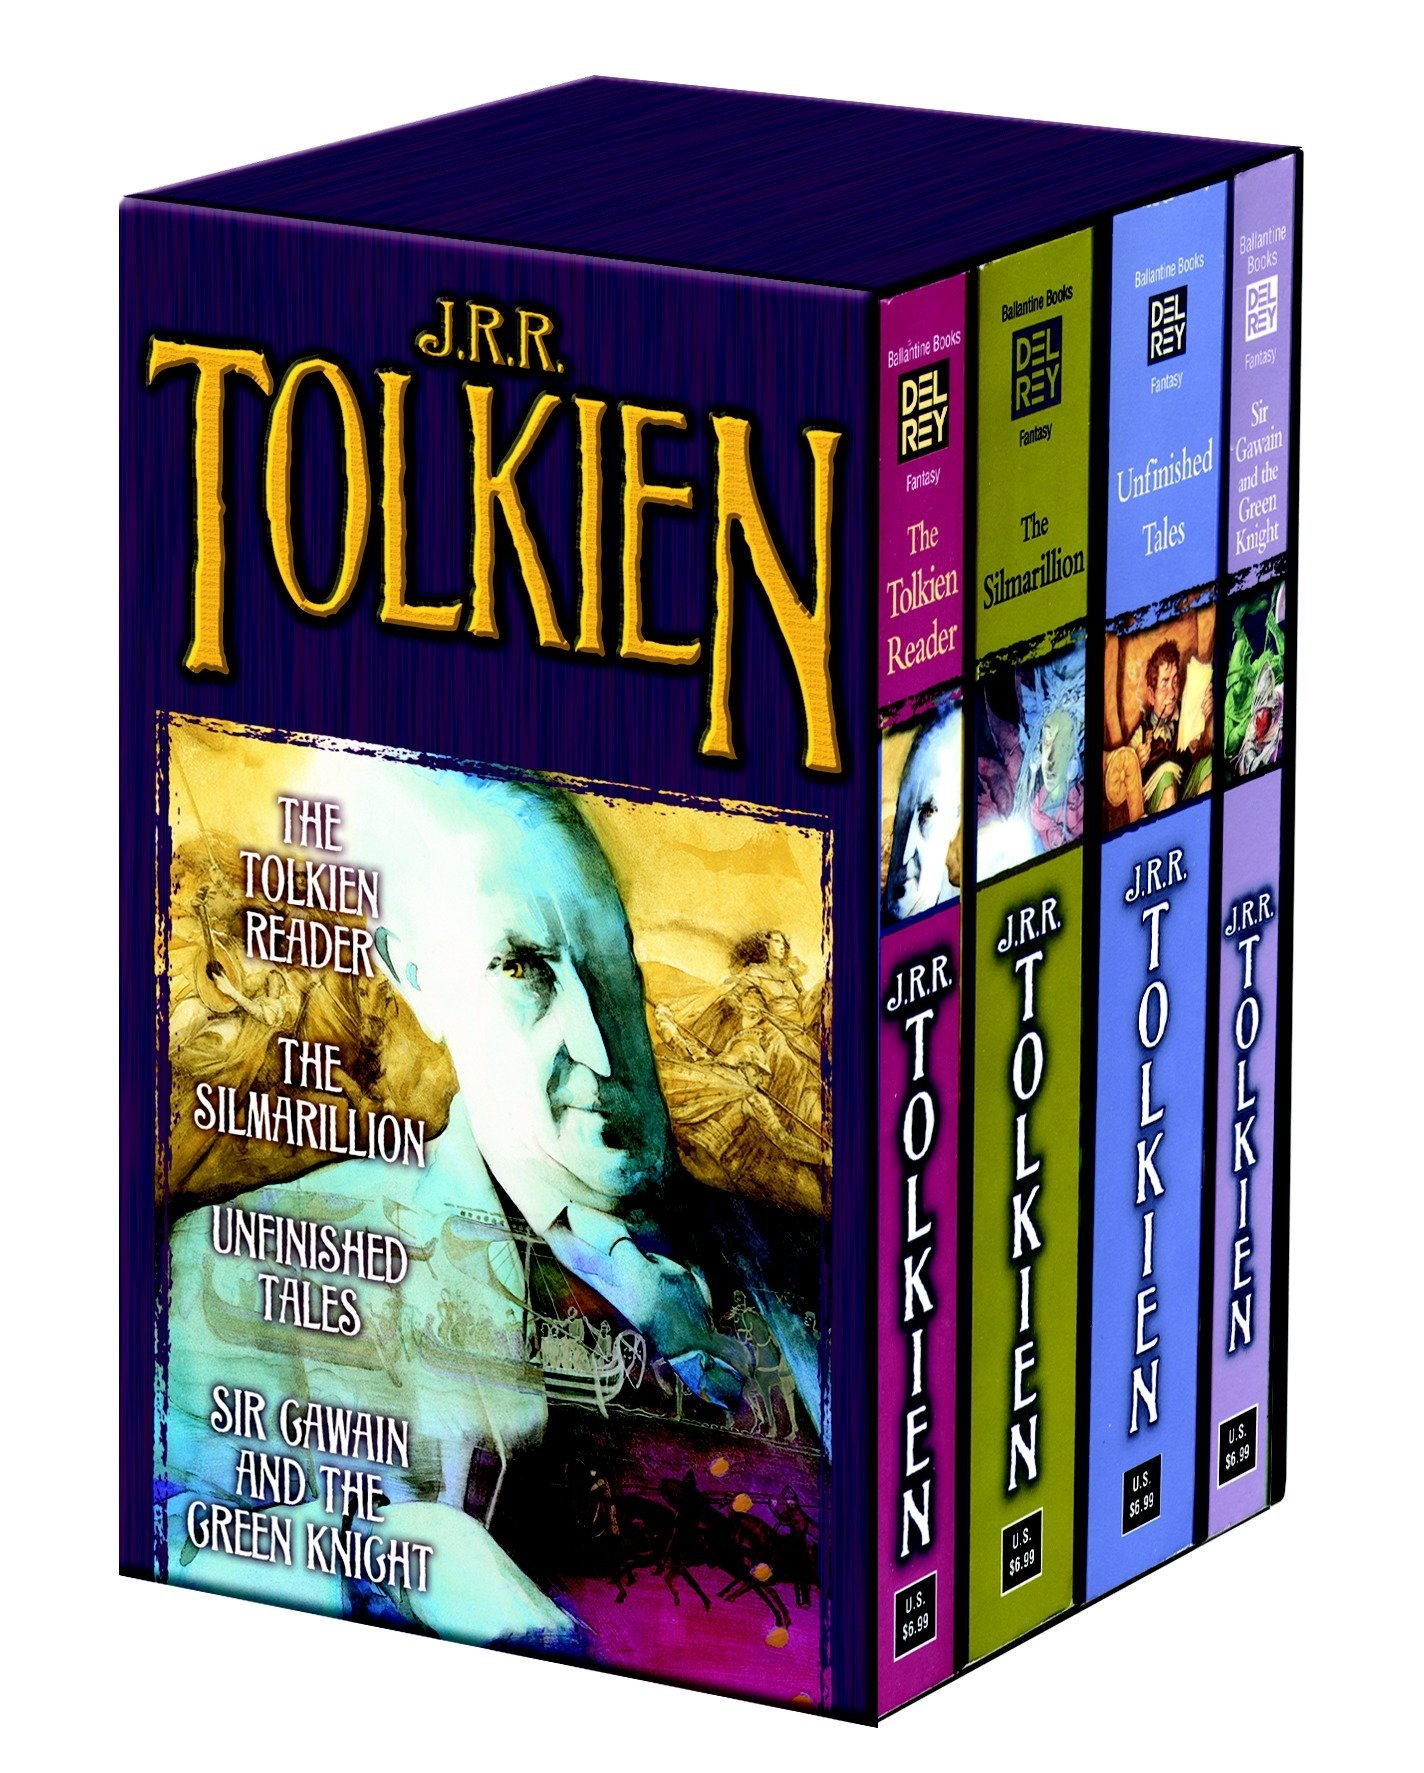 Tolkien Fantasy Tales Box Set (The Tolkien Reader/The Silmarillion/Unfinished Tales/Sir Gawain and the Green Knight) PDF